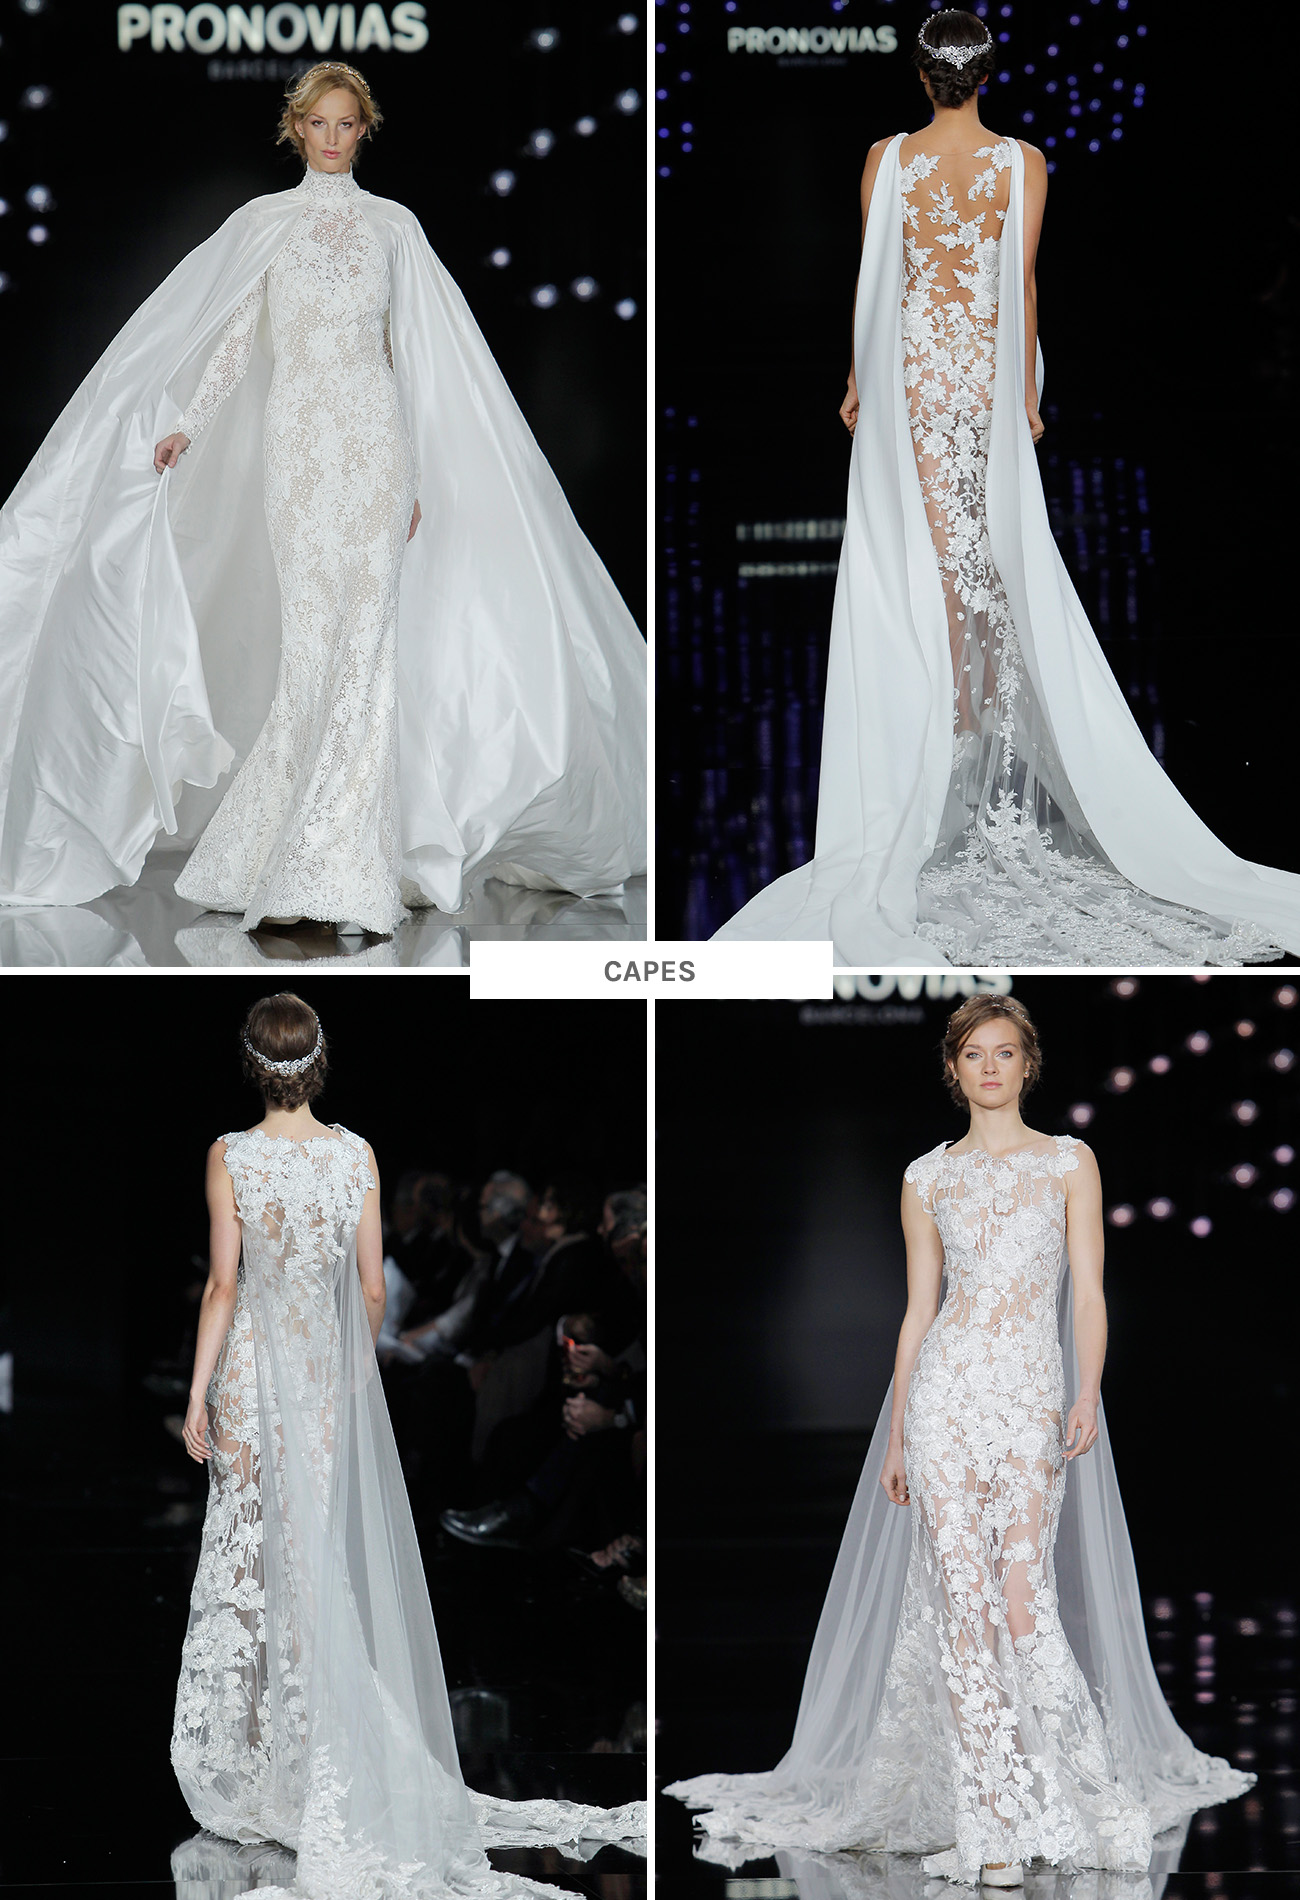 wedding dress trends from barcelona bridal fashion week wedding dress with cape Pronovias Wedding Dresses with capes from Barcelona Bridal Week